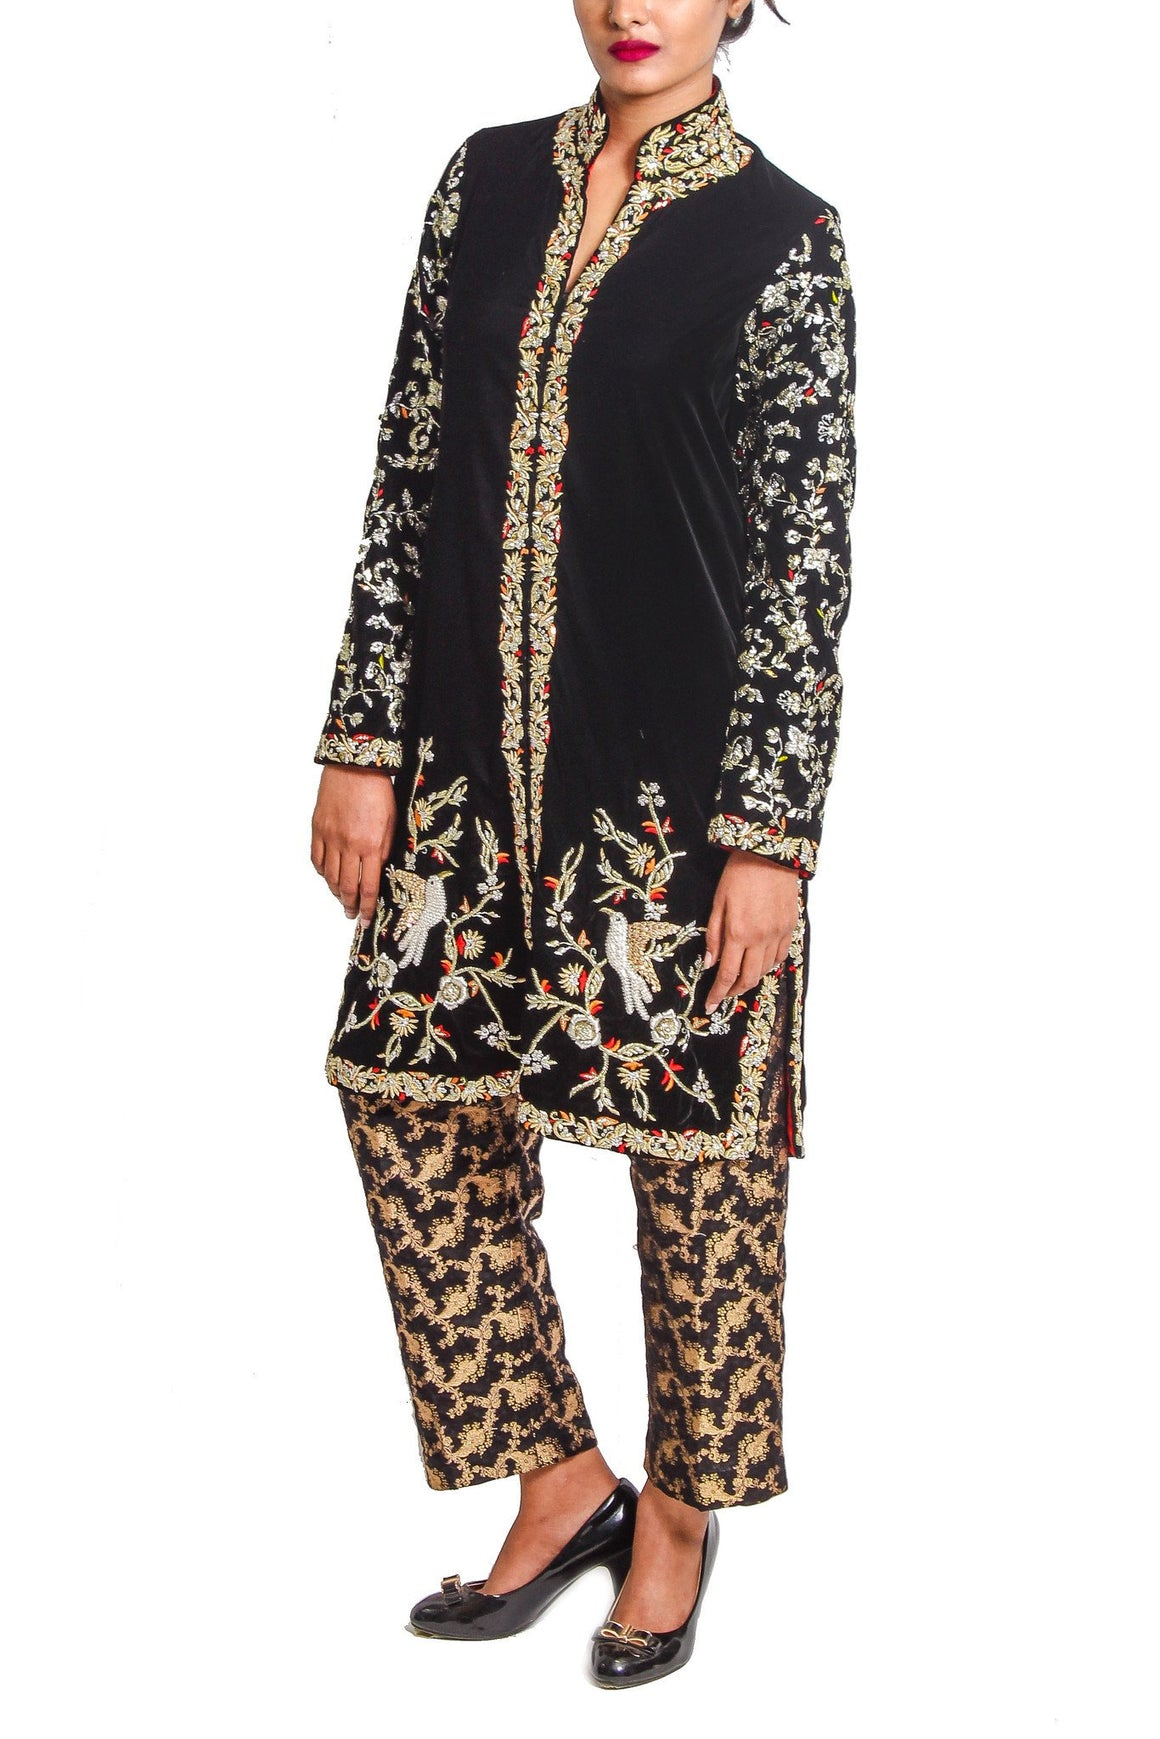 Maheen Karim - Black Velvet Bird Coat with Cigarette Pants